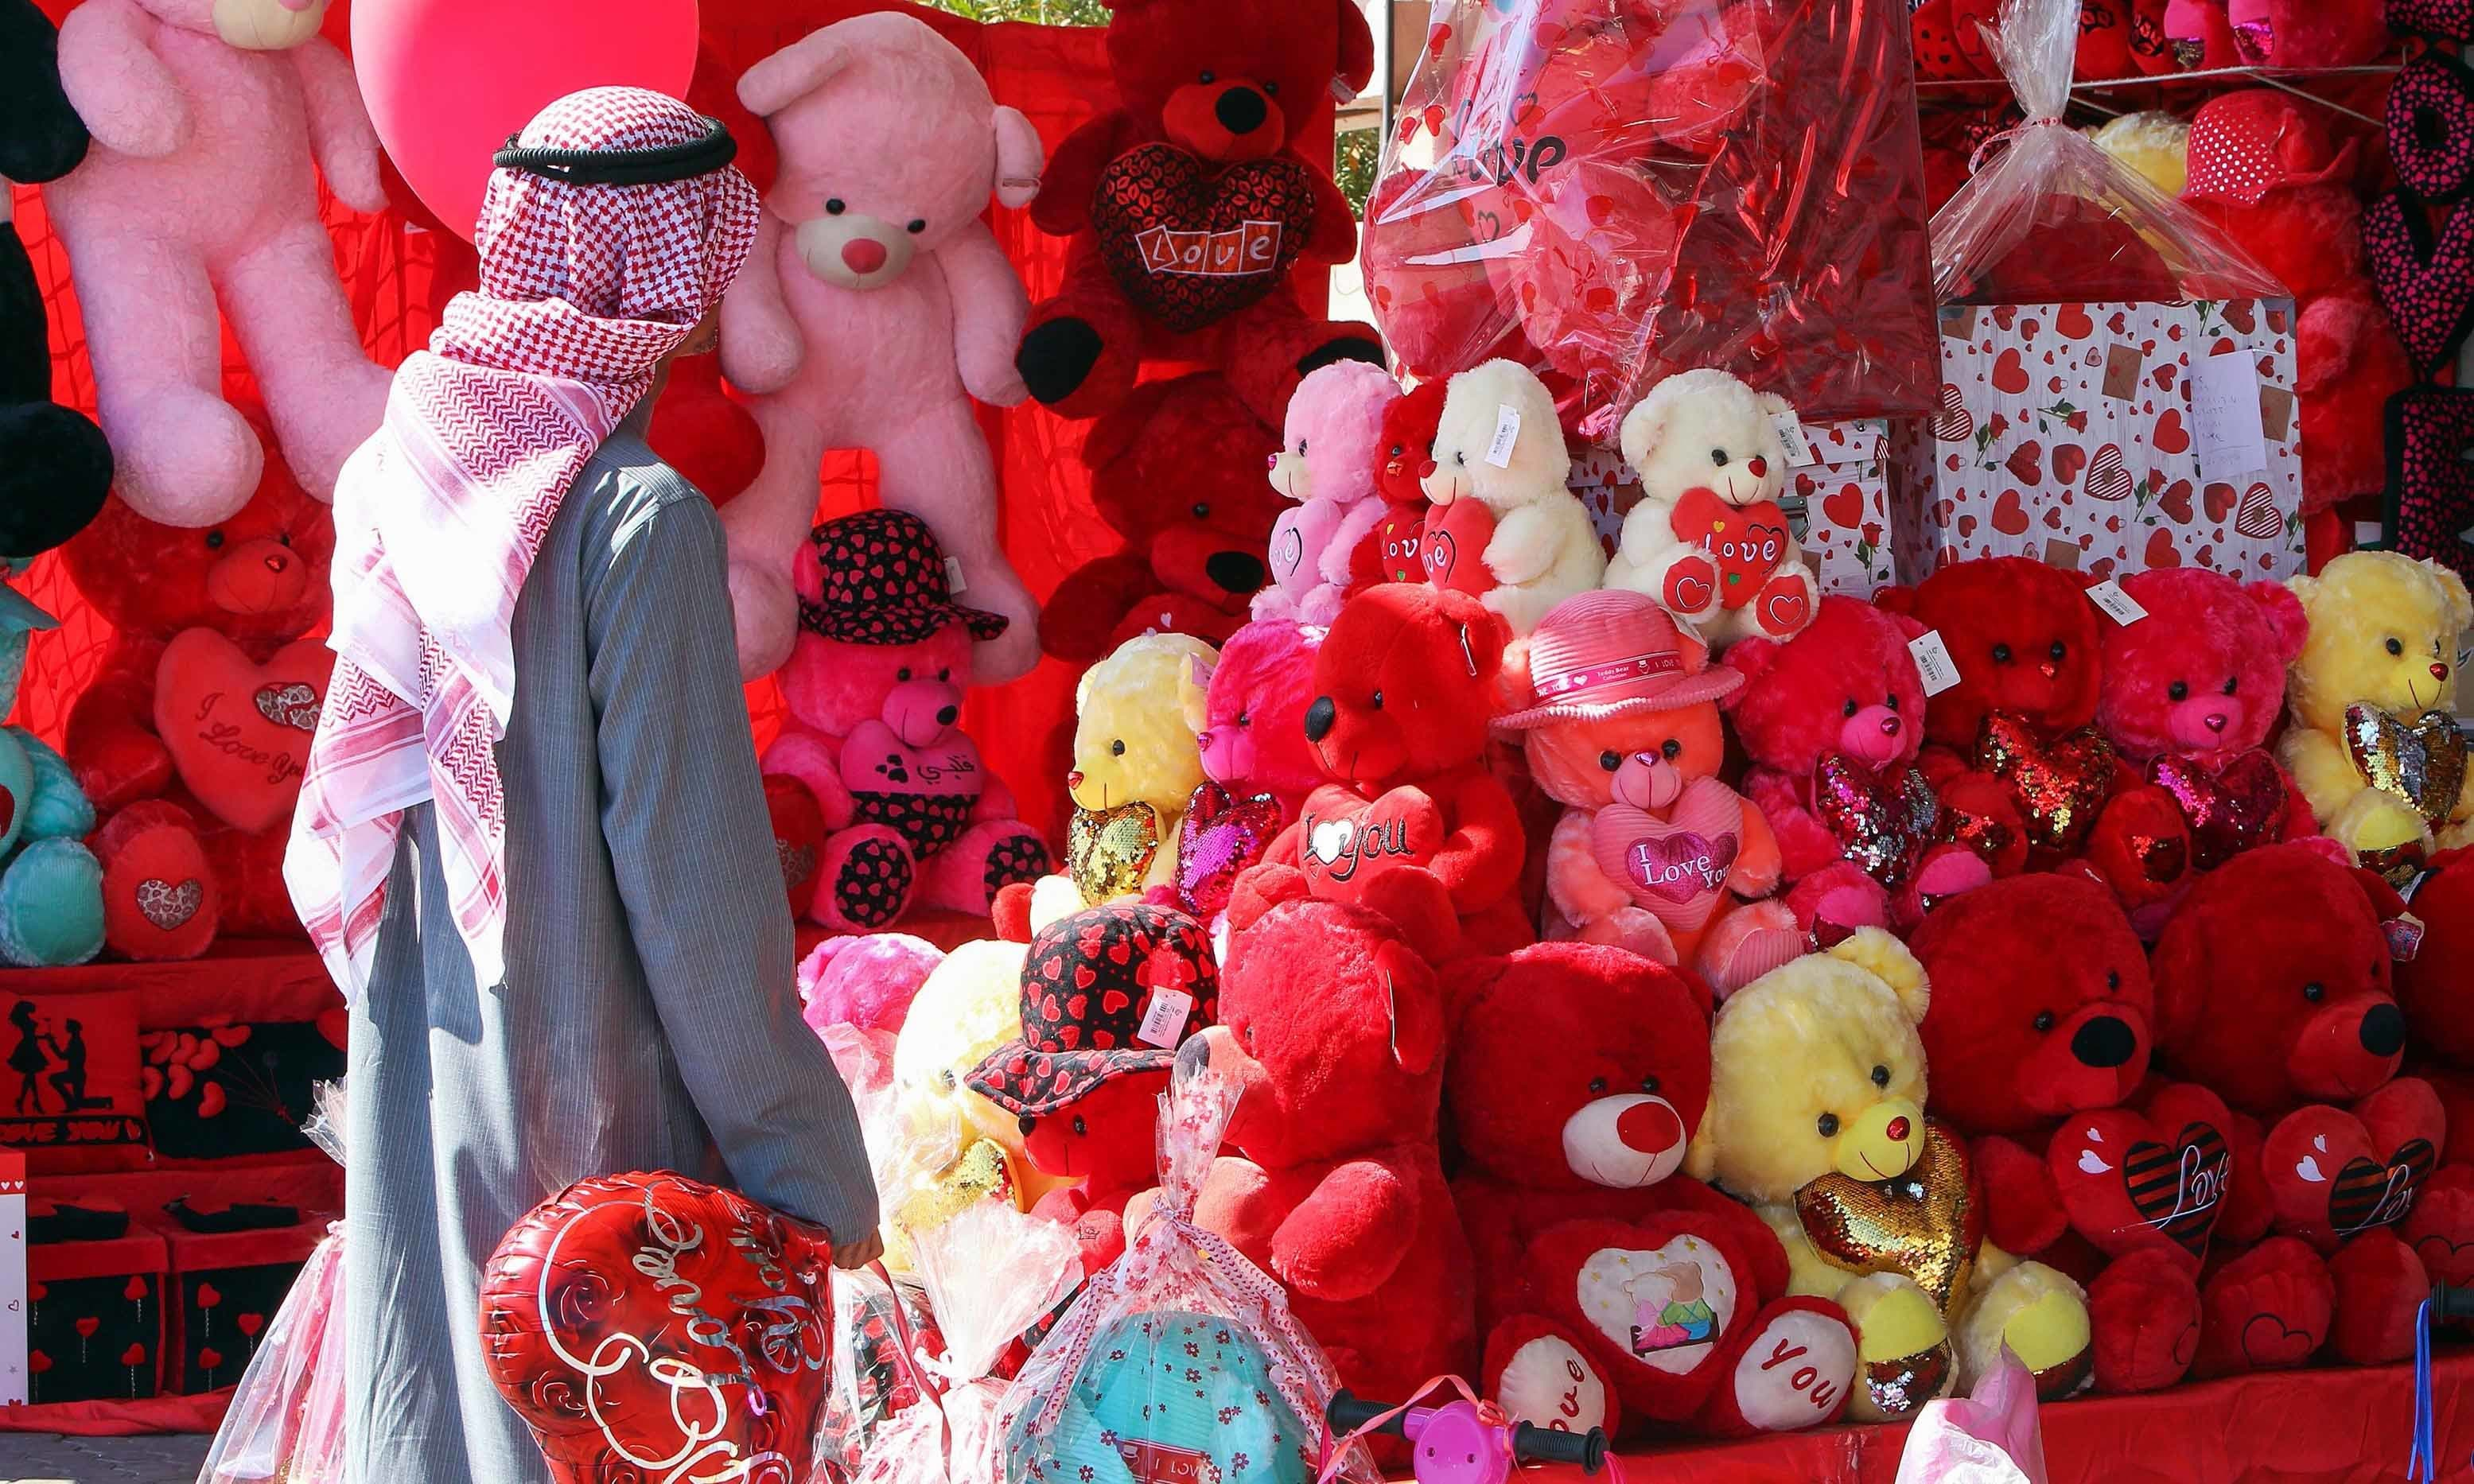 A Kuwaiti man holds a heart-shaped balloon outside a shop in Kuwait City on February 13 ahead of Valentine's Day. — AFP